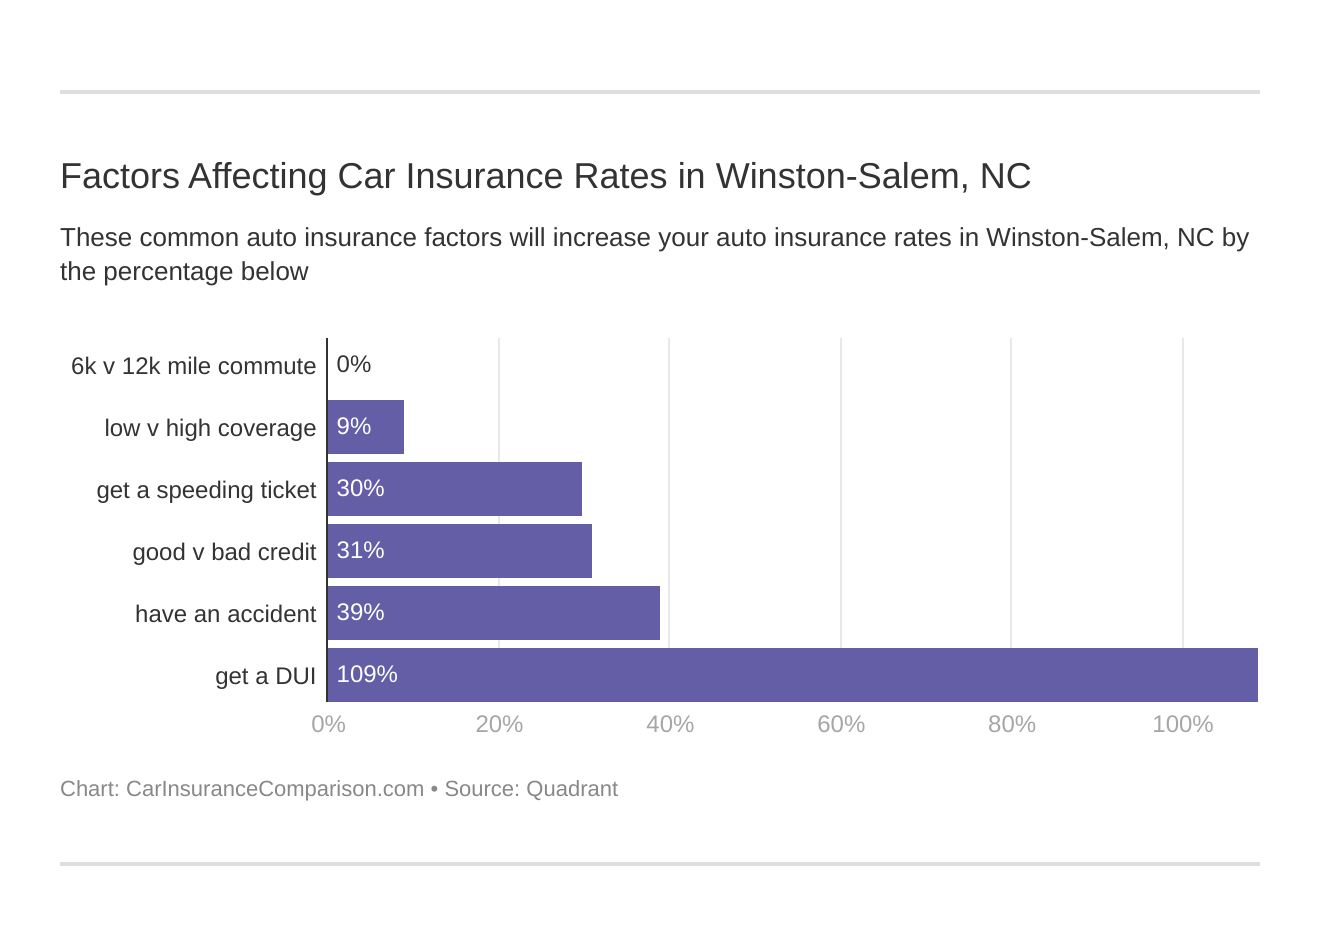 Factors Affecting Car Insurance Rates in Winston-Salem, NC